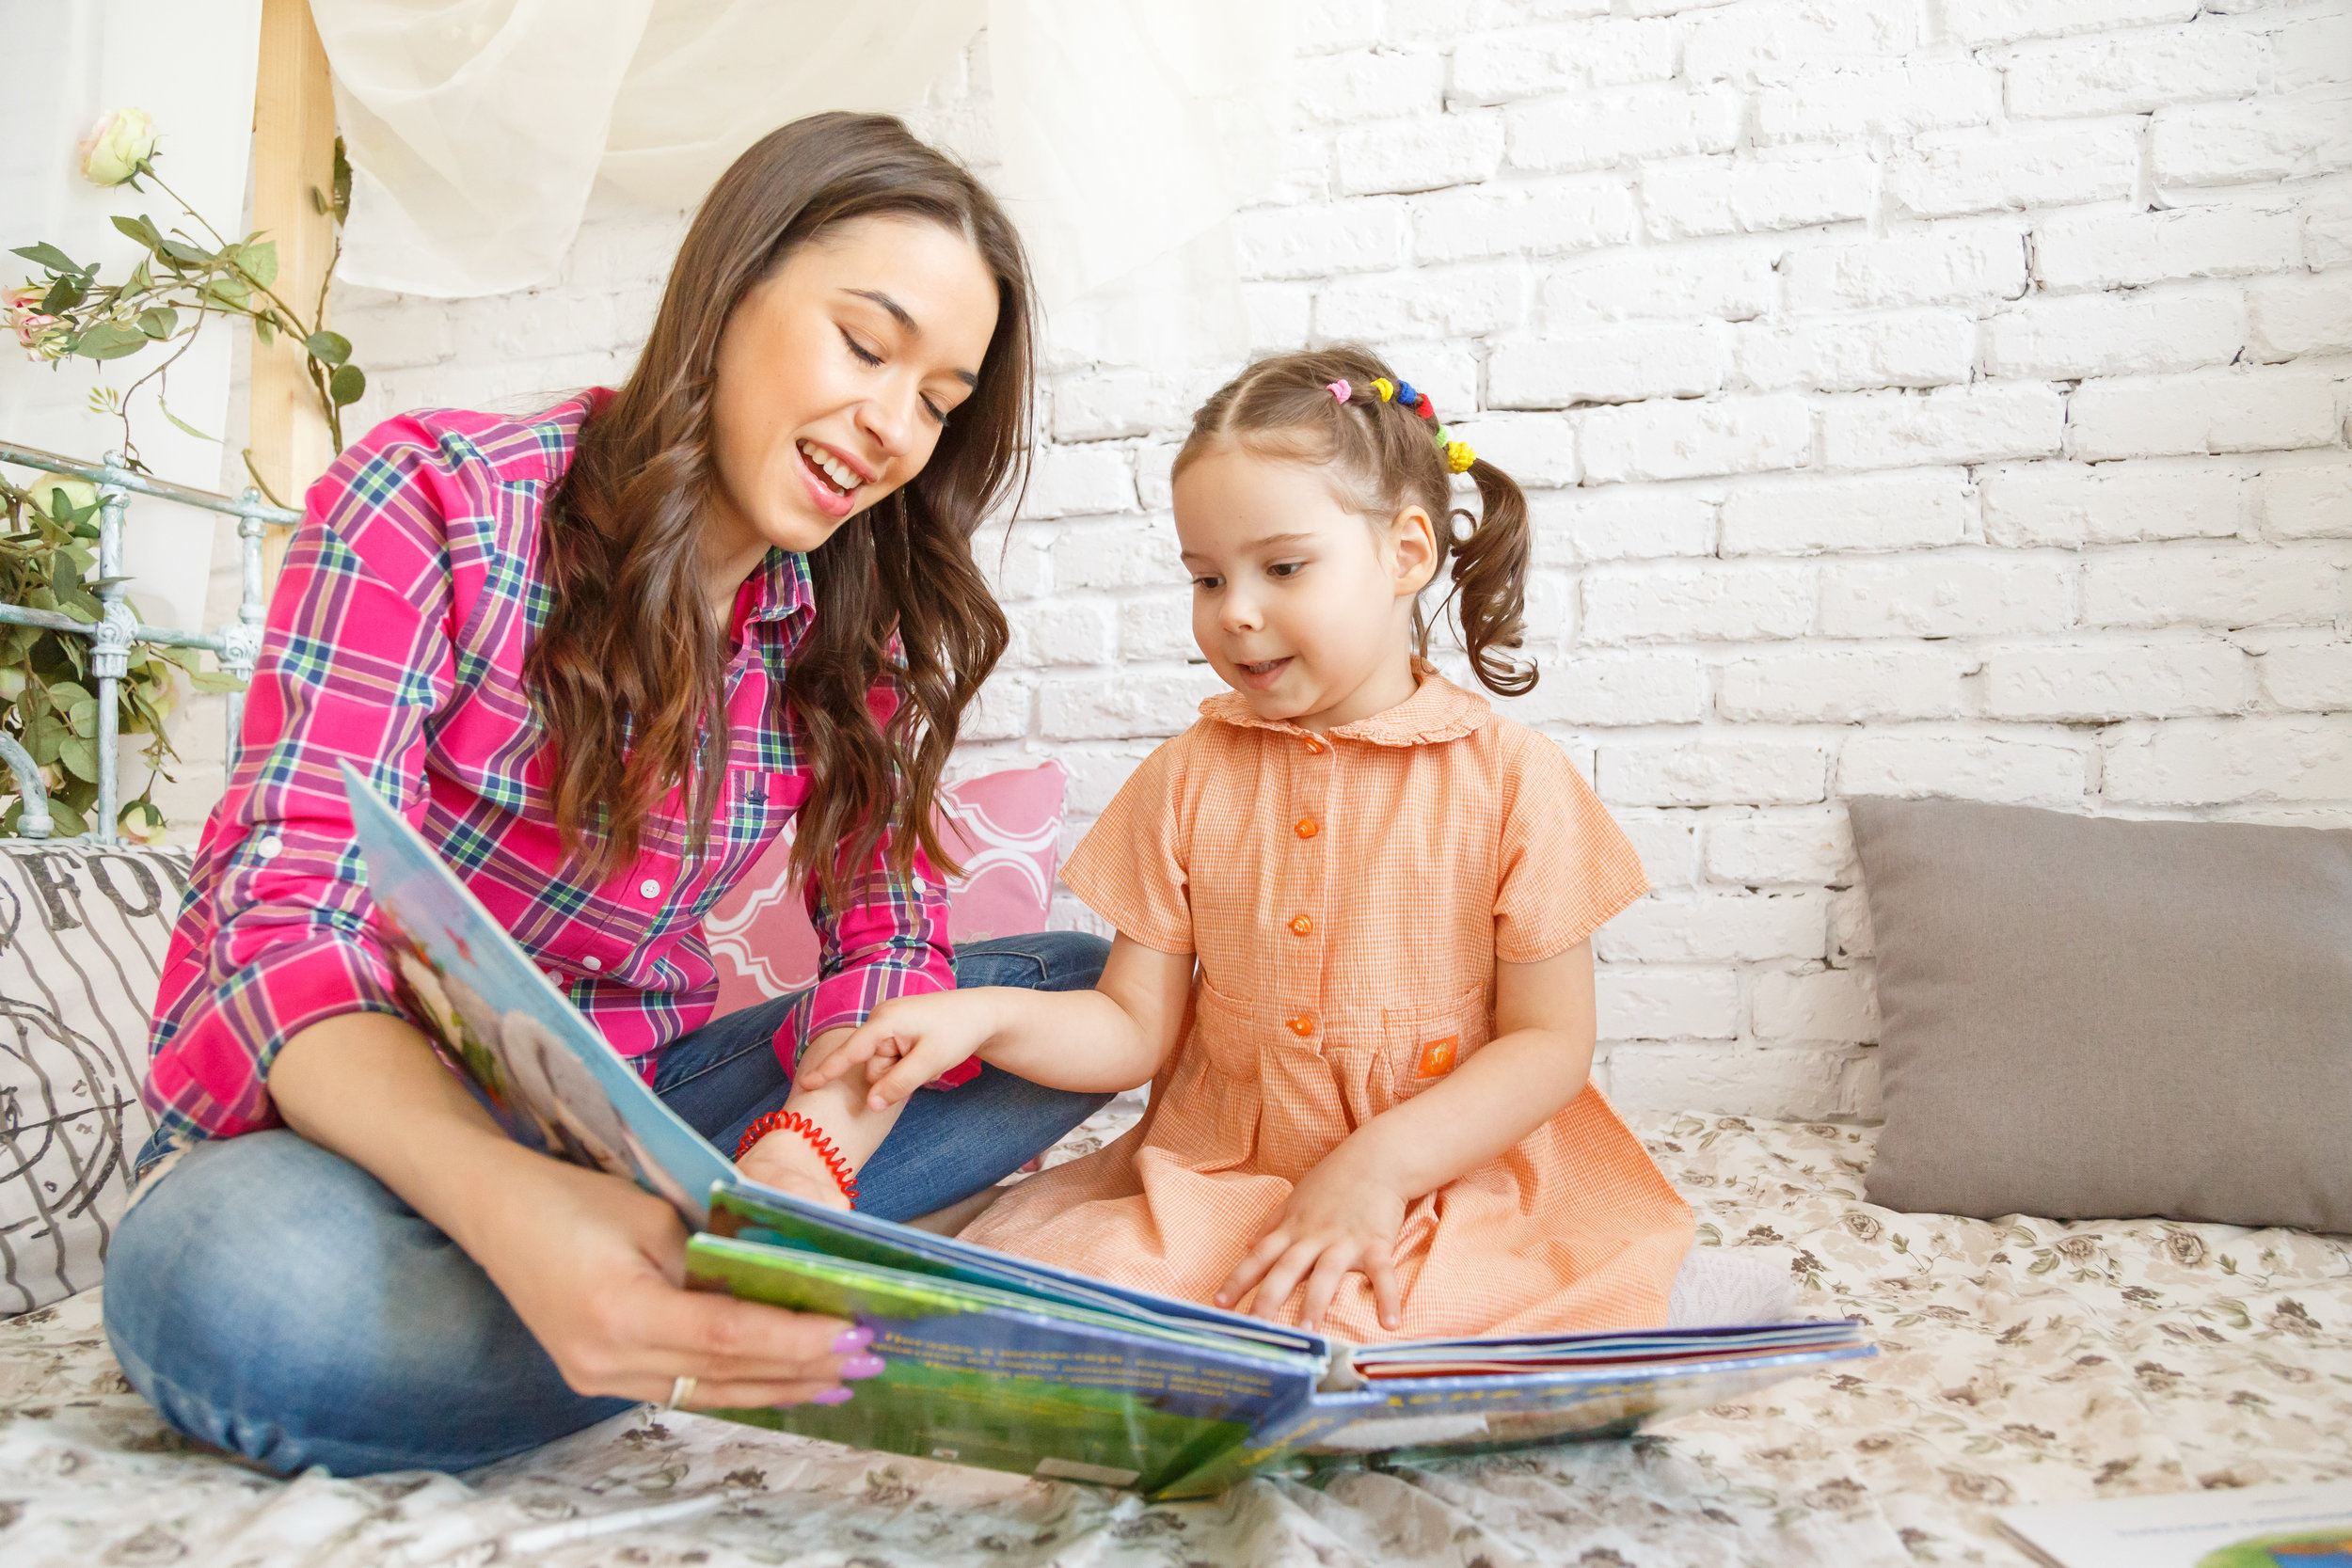 young-mother-and-her-child-girl-reading-a-book-PEPCFQR.jpg